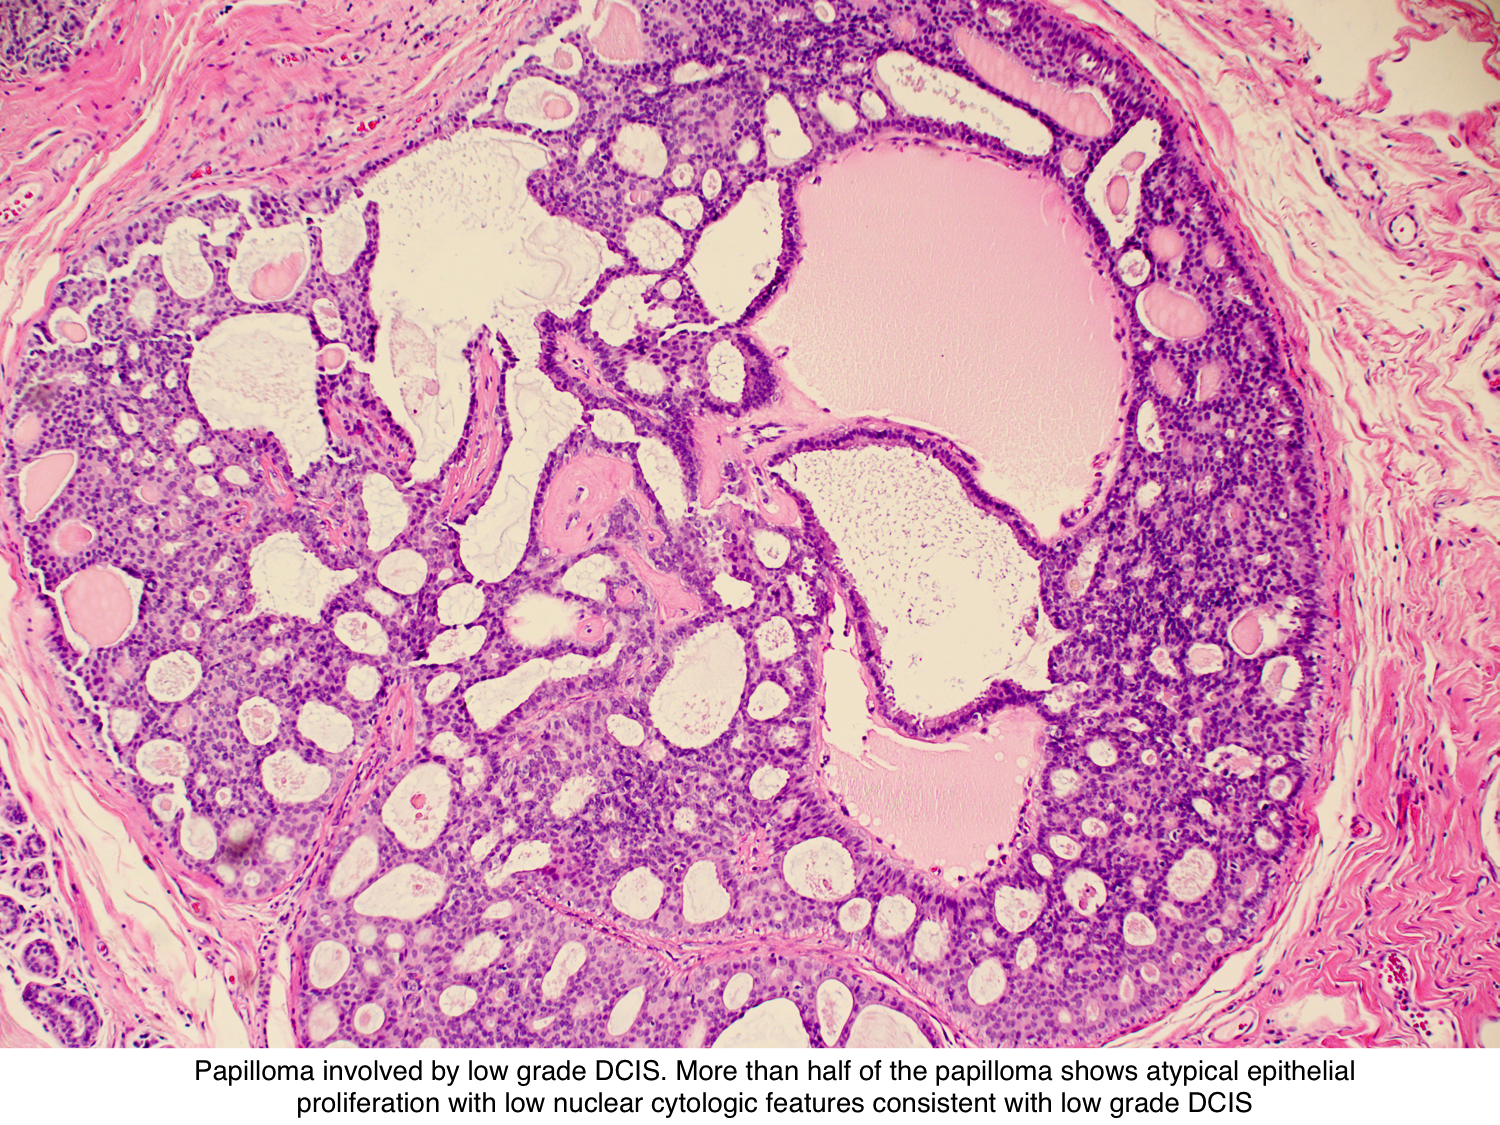 papilloma with dcis